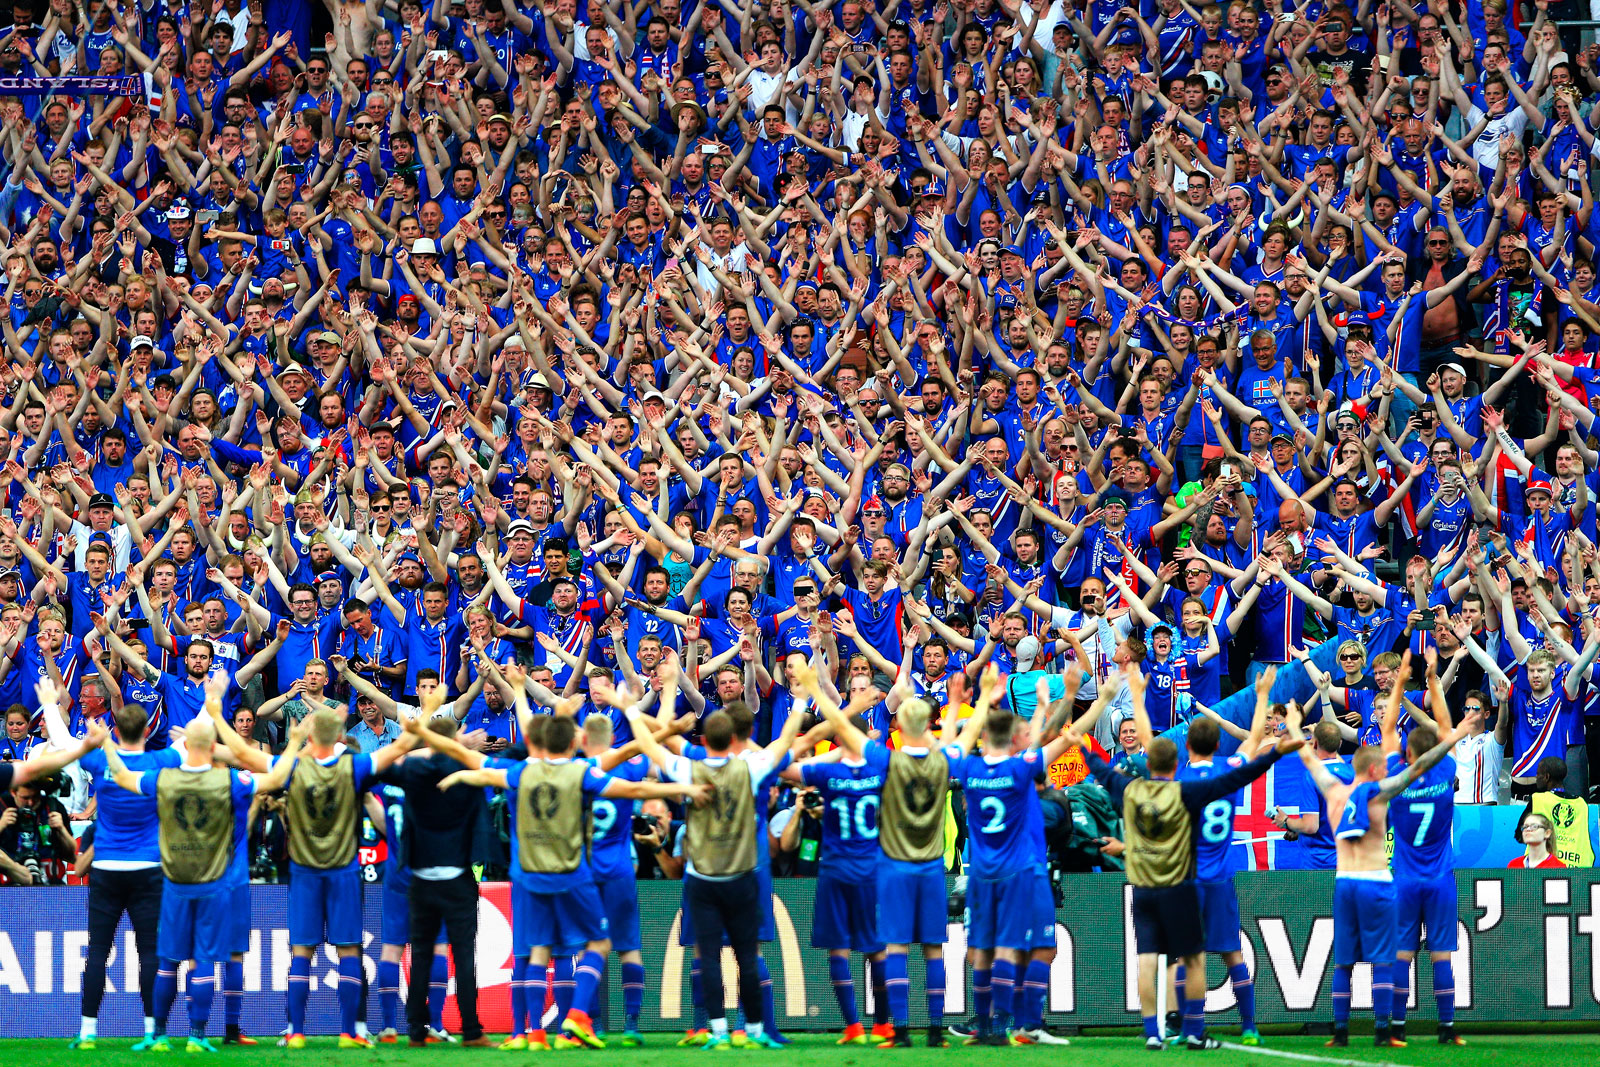 Iceland fans and players perform their viking clap at Euro 2016